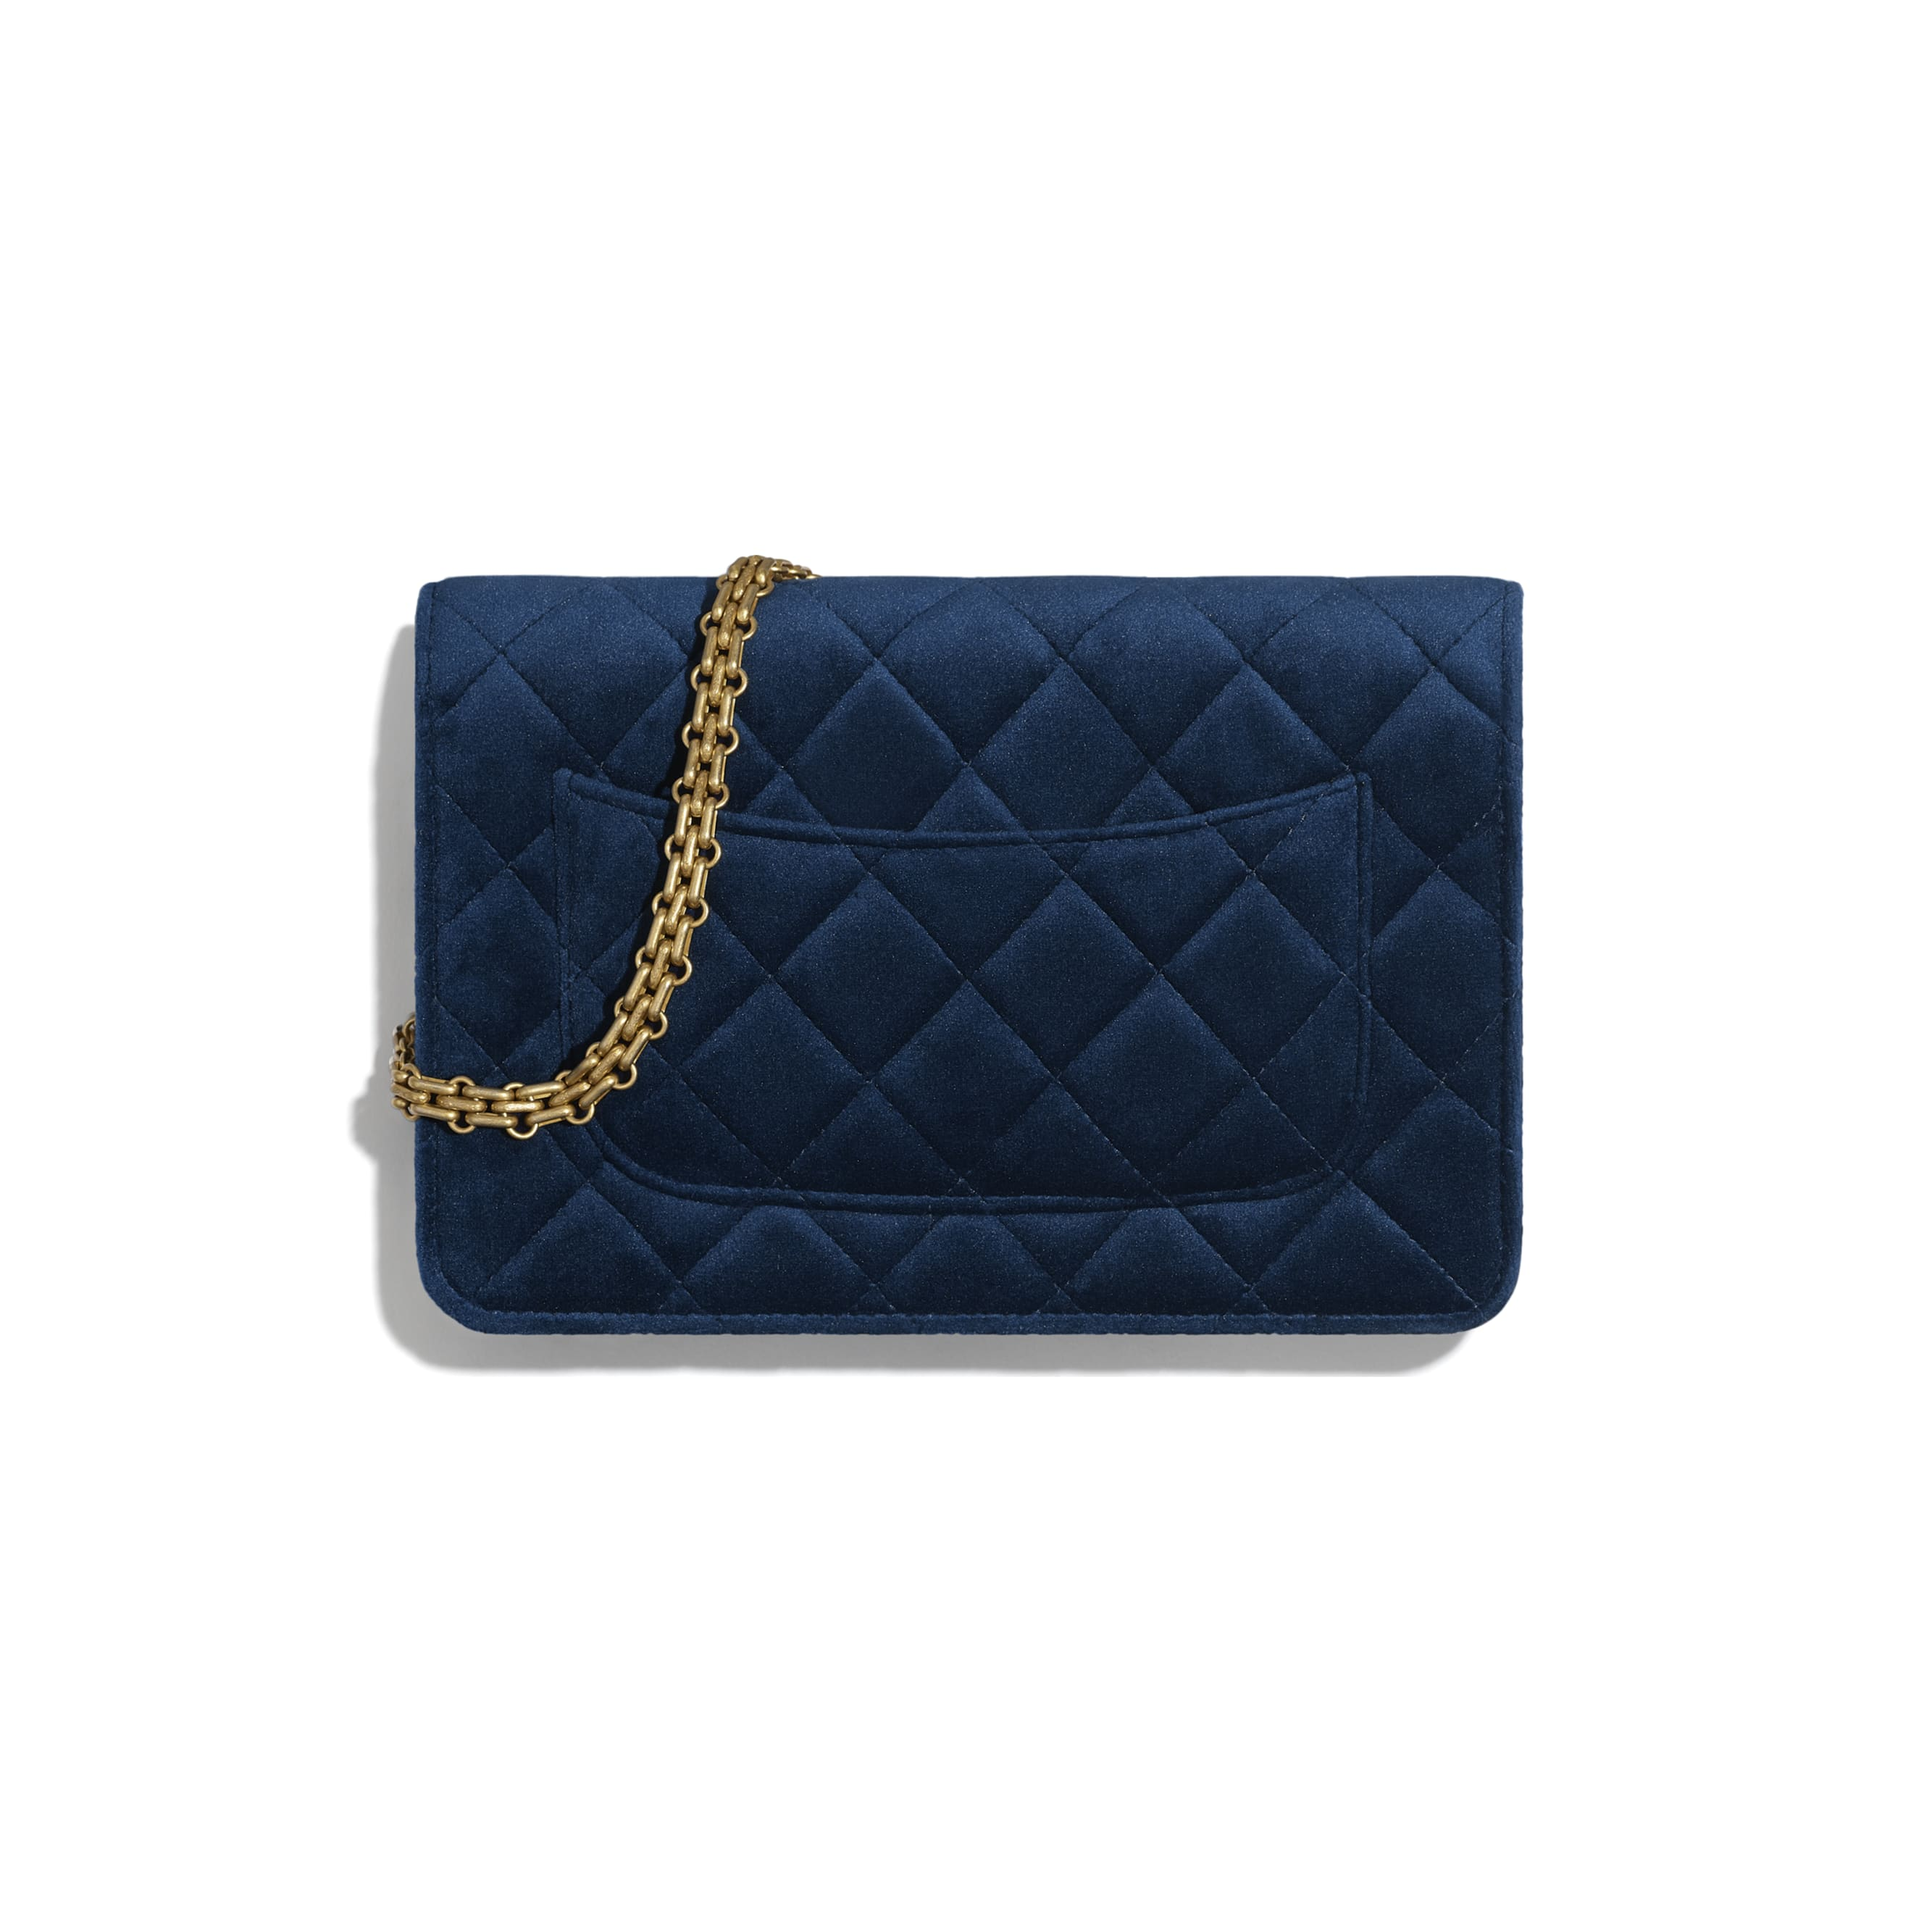 2.55 Wallet On Chain - Navy Blue - Velvet & Gold Metal - Alternative view - see standard sized version